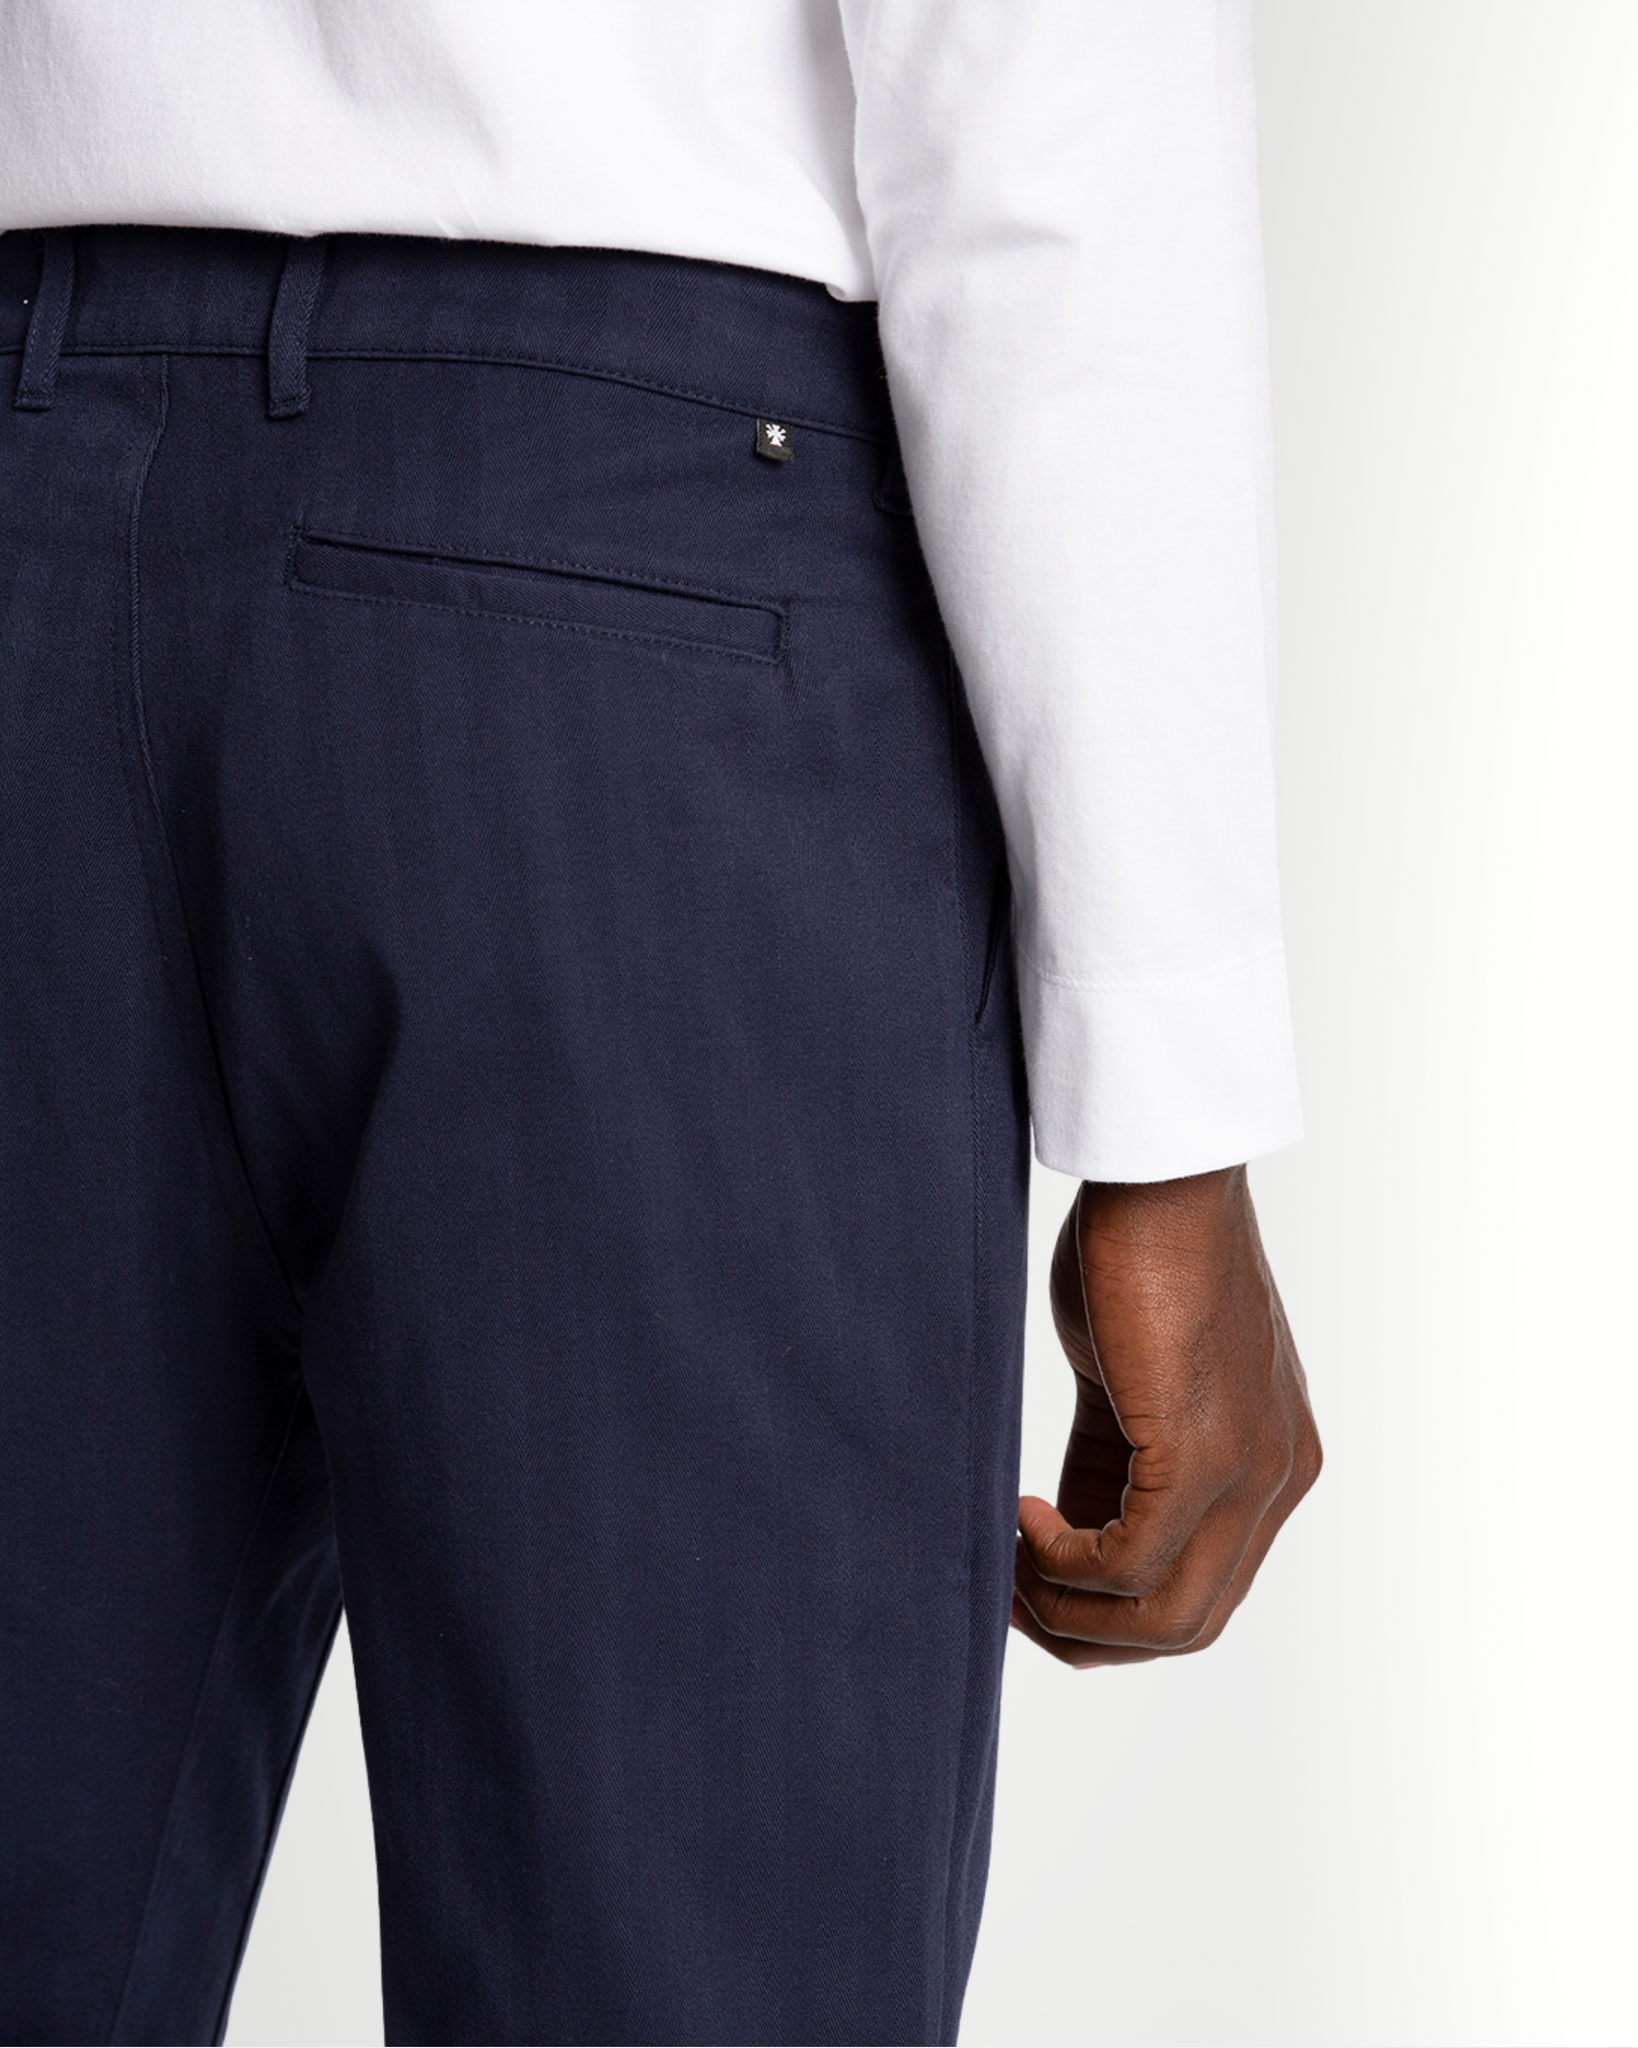 The Cotton Herringbone Straight Leg Trouser in Black Iris (Navy)